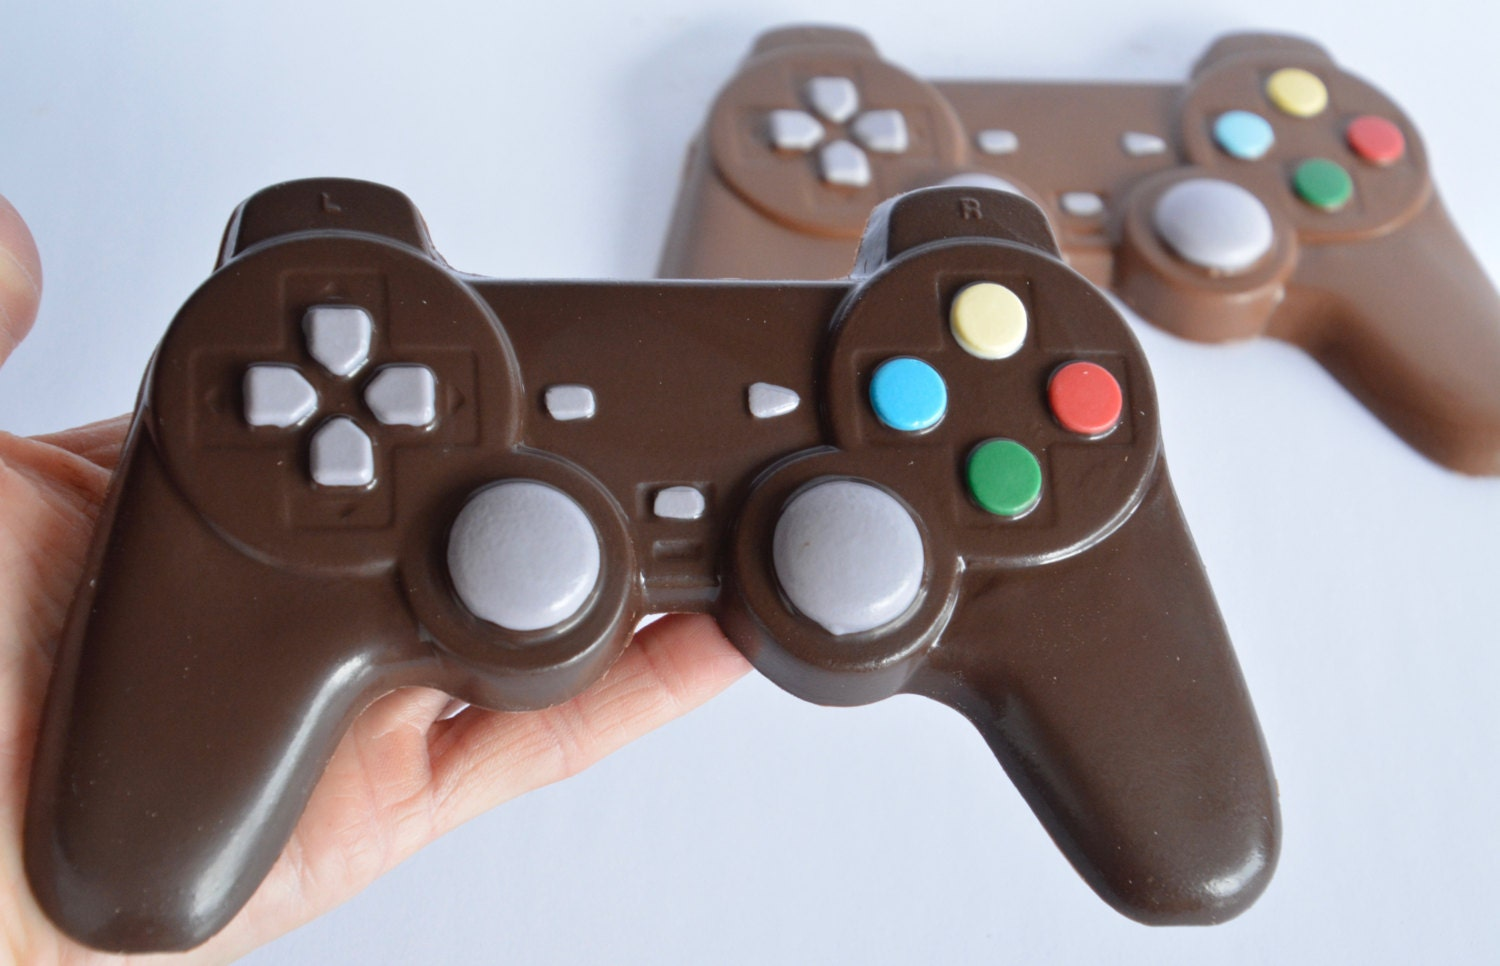 Ps4 Playstation Chocolate Video Game Controller Chocolate Etsy